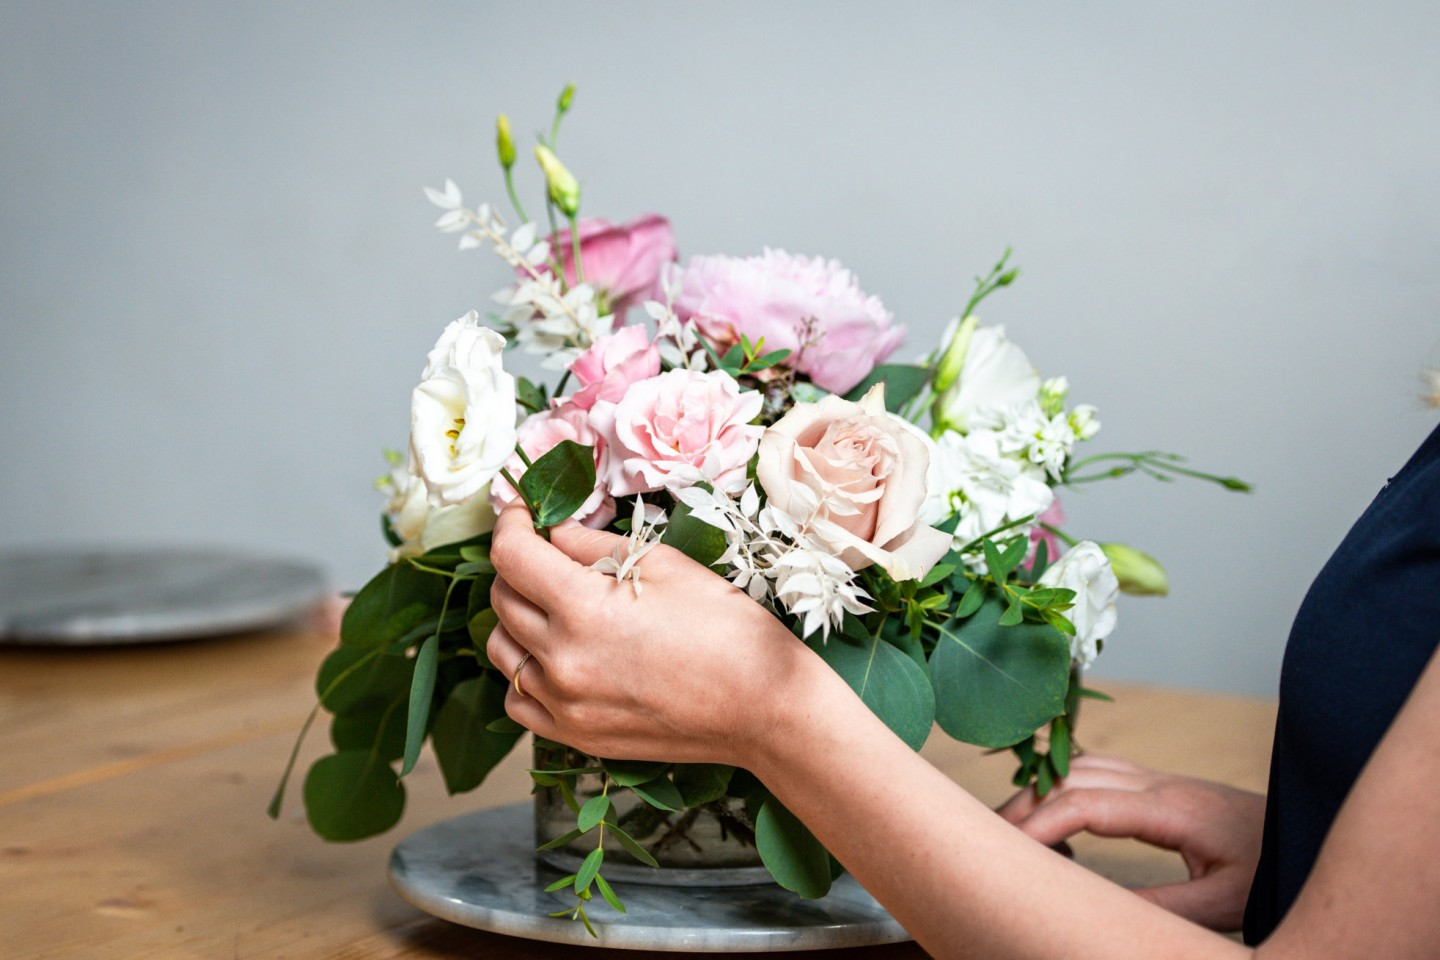 Floral arrangement with pink and white flowers